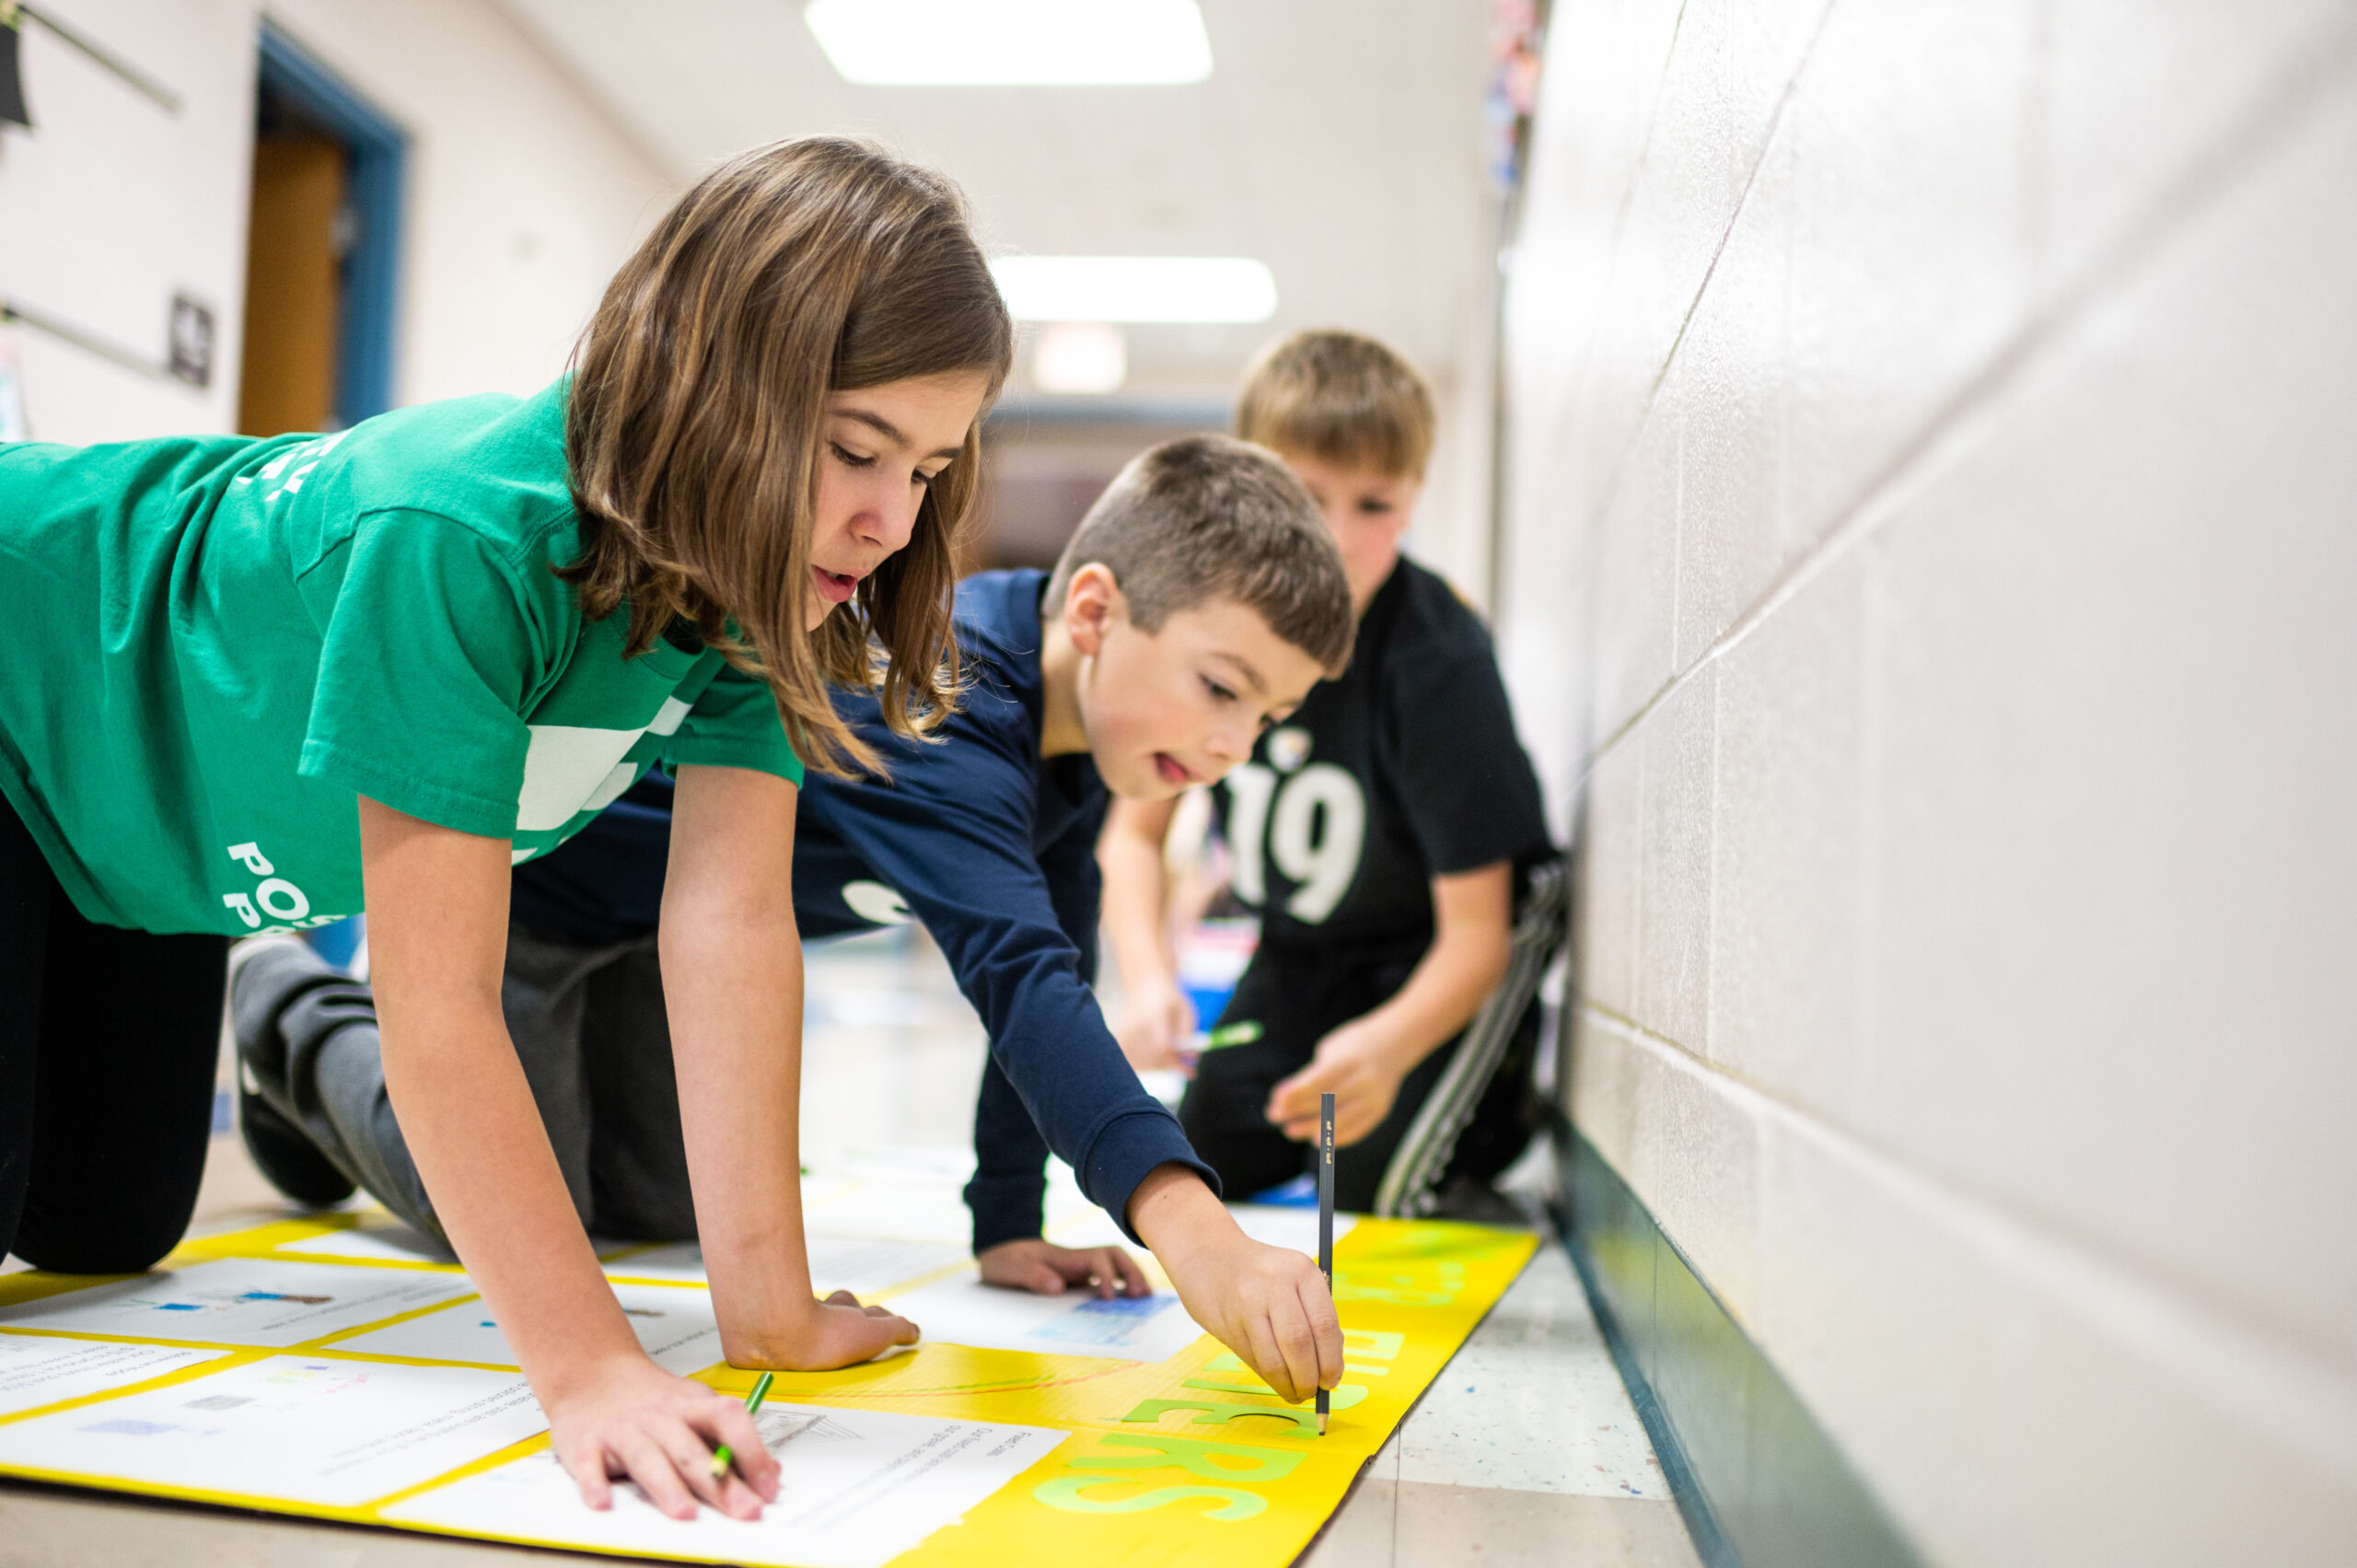 Students from Mason Elementary School of Grand Blanc Community Schools work on their Young Shark presentation. Image credit: Eric Bronson / Michigan Photography